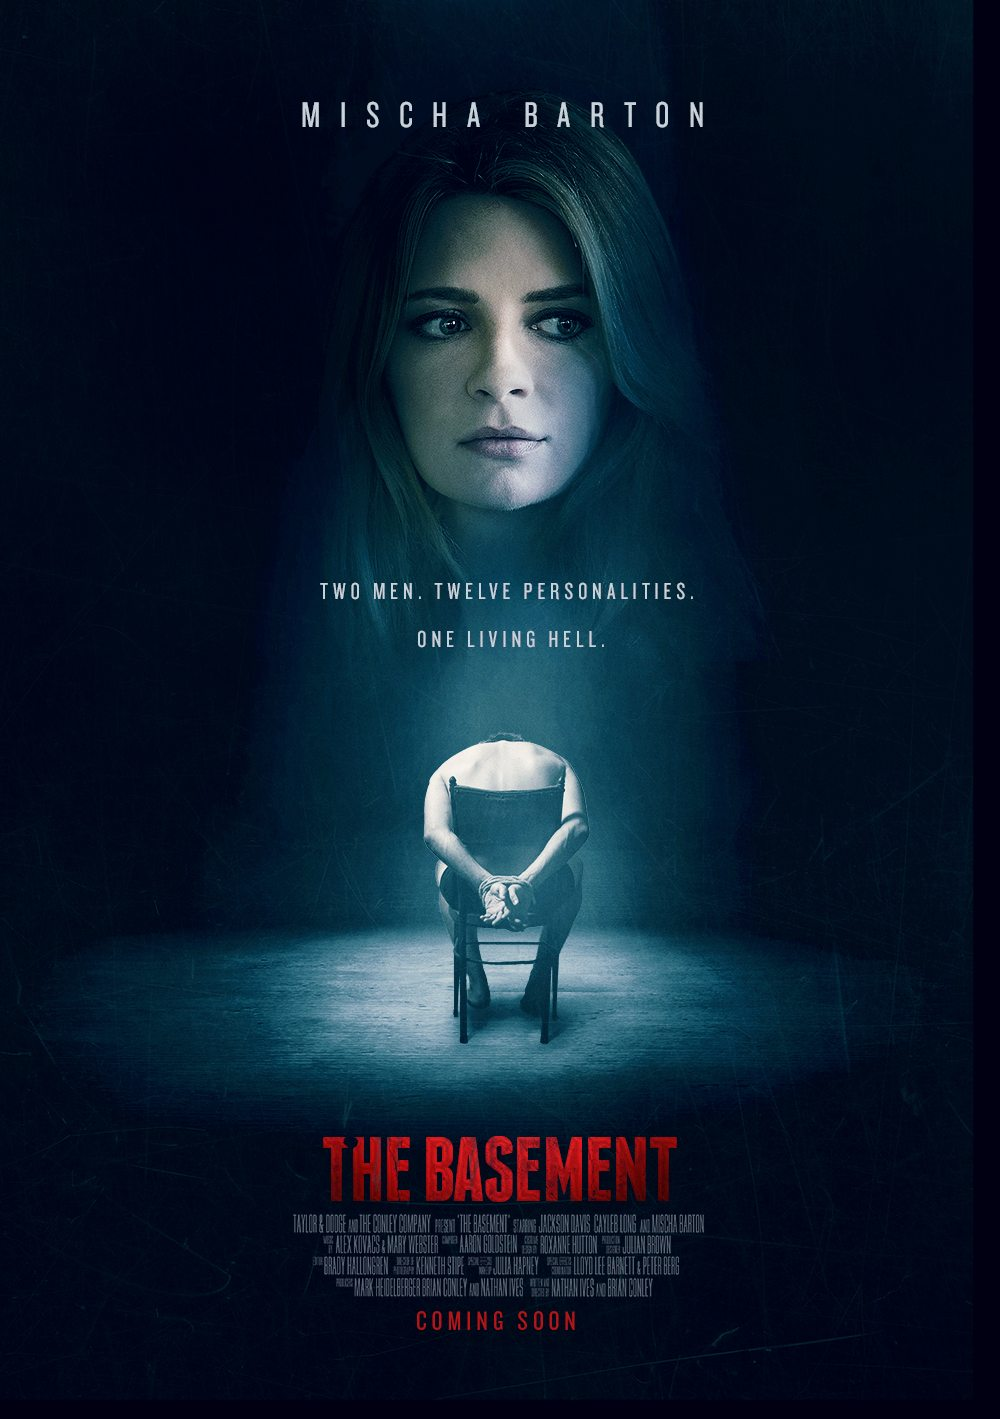 SF the basement - Shriekfest 2017 Announces First Films - The Basement, Cannibals and Carpet Fitters, and The Glass Coffin